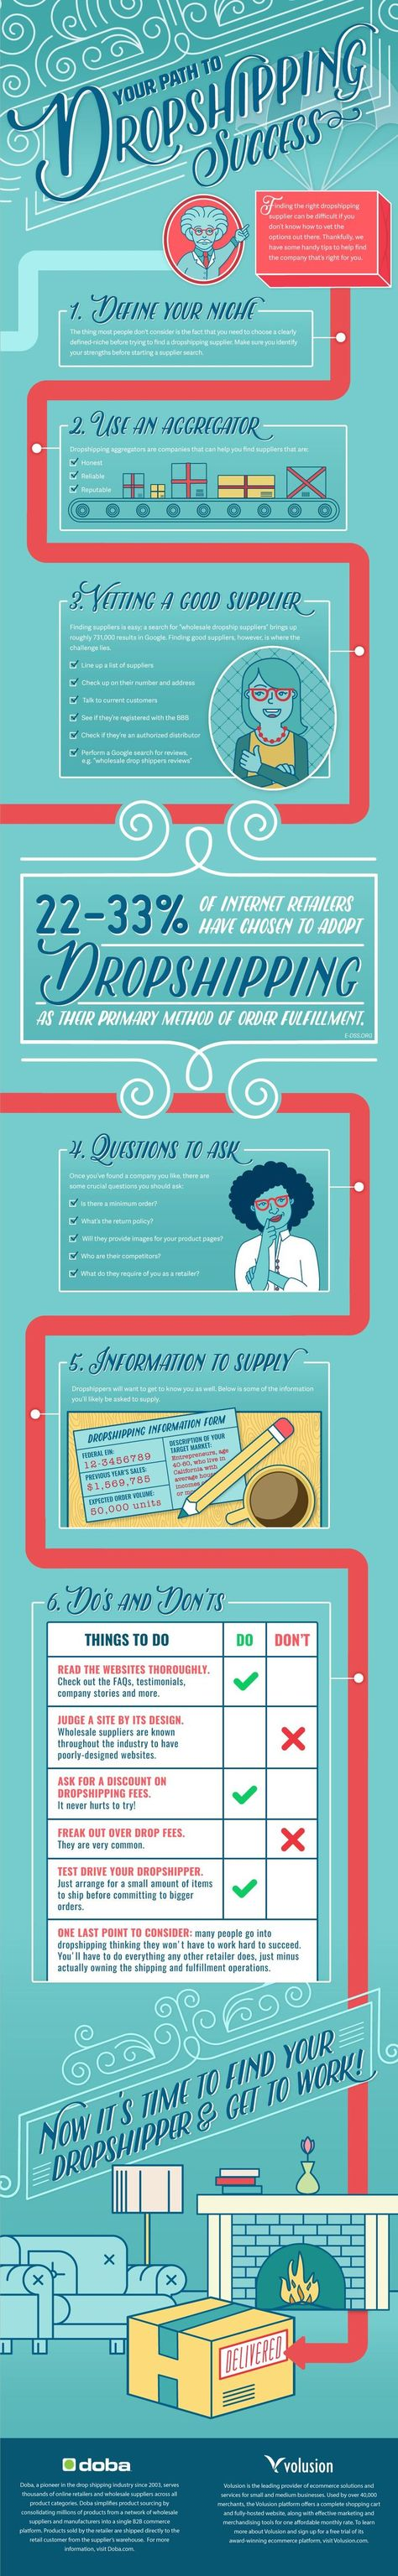 Infographic: Your Guide to Dropshipping Success